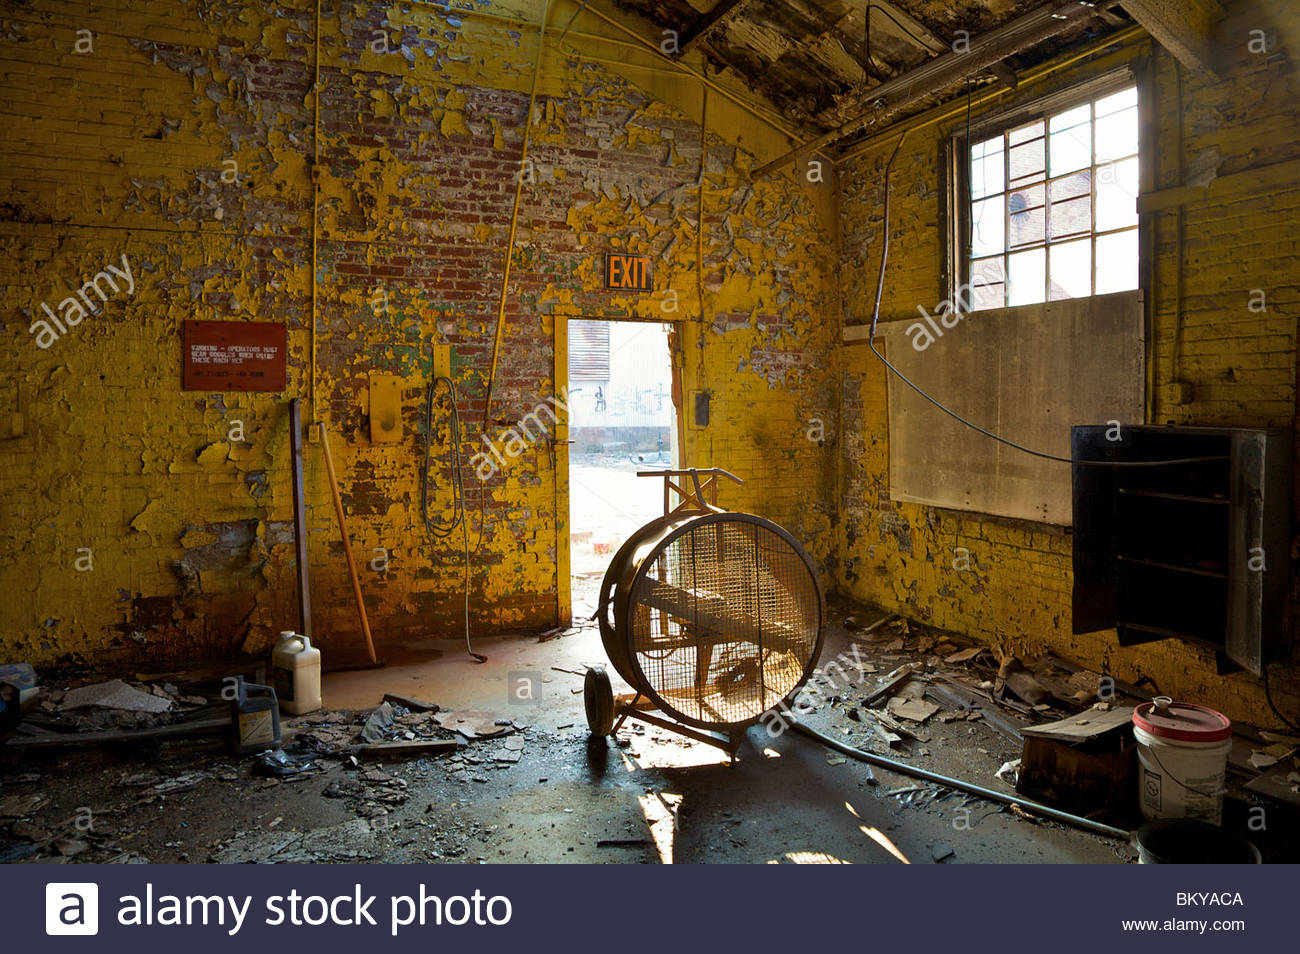 abandoned warehouse with peeling yellow paint on the walls. Black Bedroom Furniture Sets. Home Design Ideas